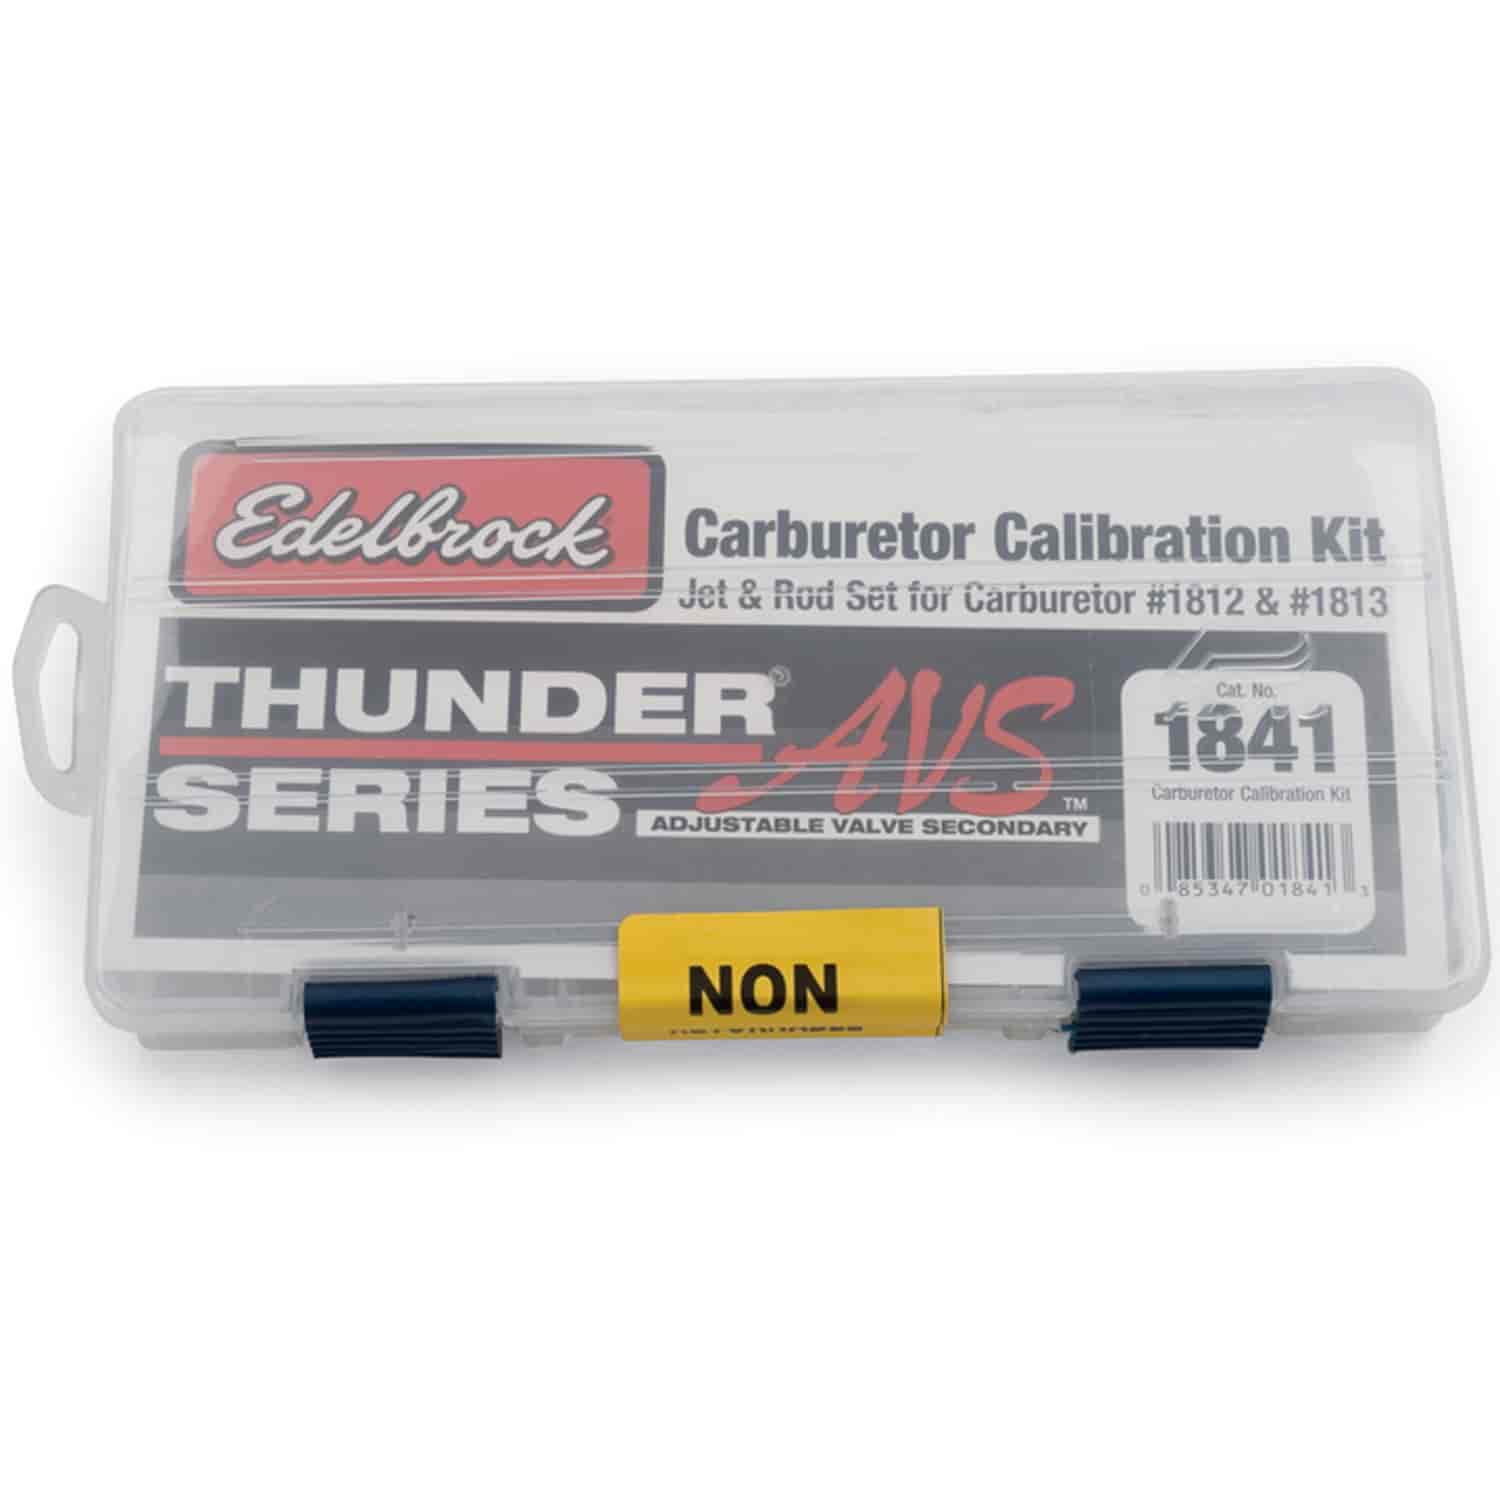 Edelbrock 1841 - Edelbrock Carburetor Calibration Kits